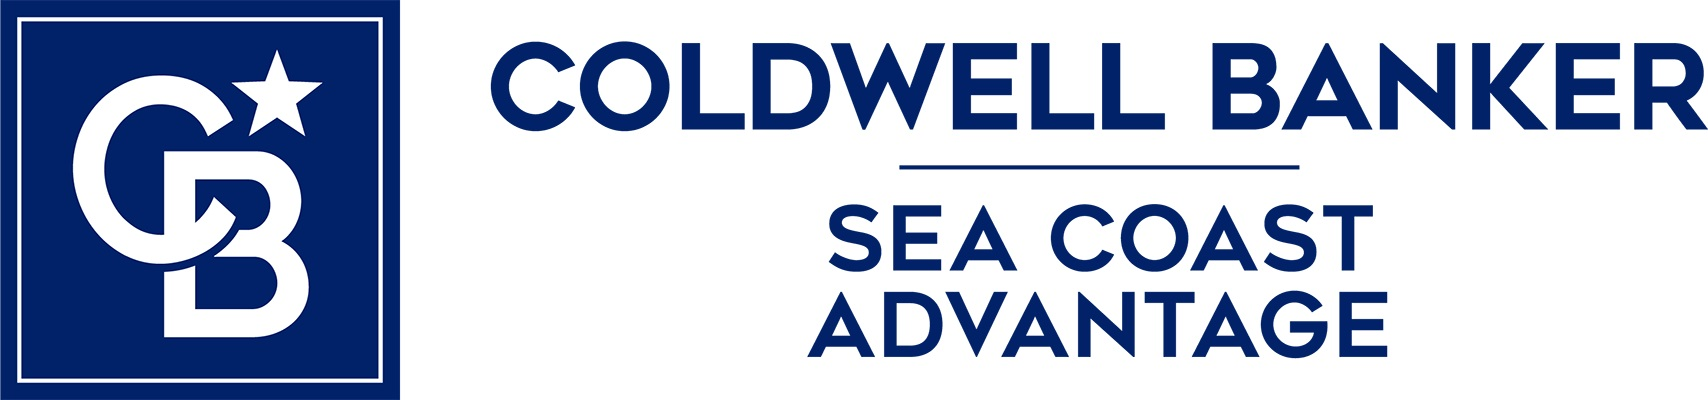 Don Moran - Coldwell Banker Sea Coast Advantage Realty